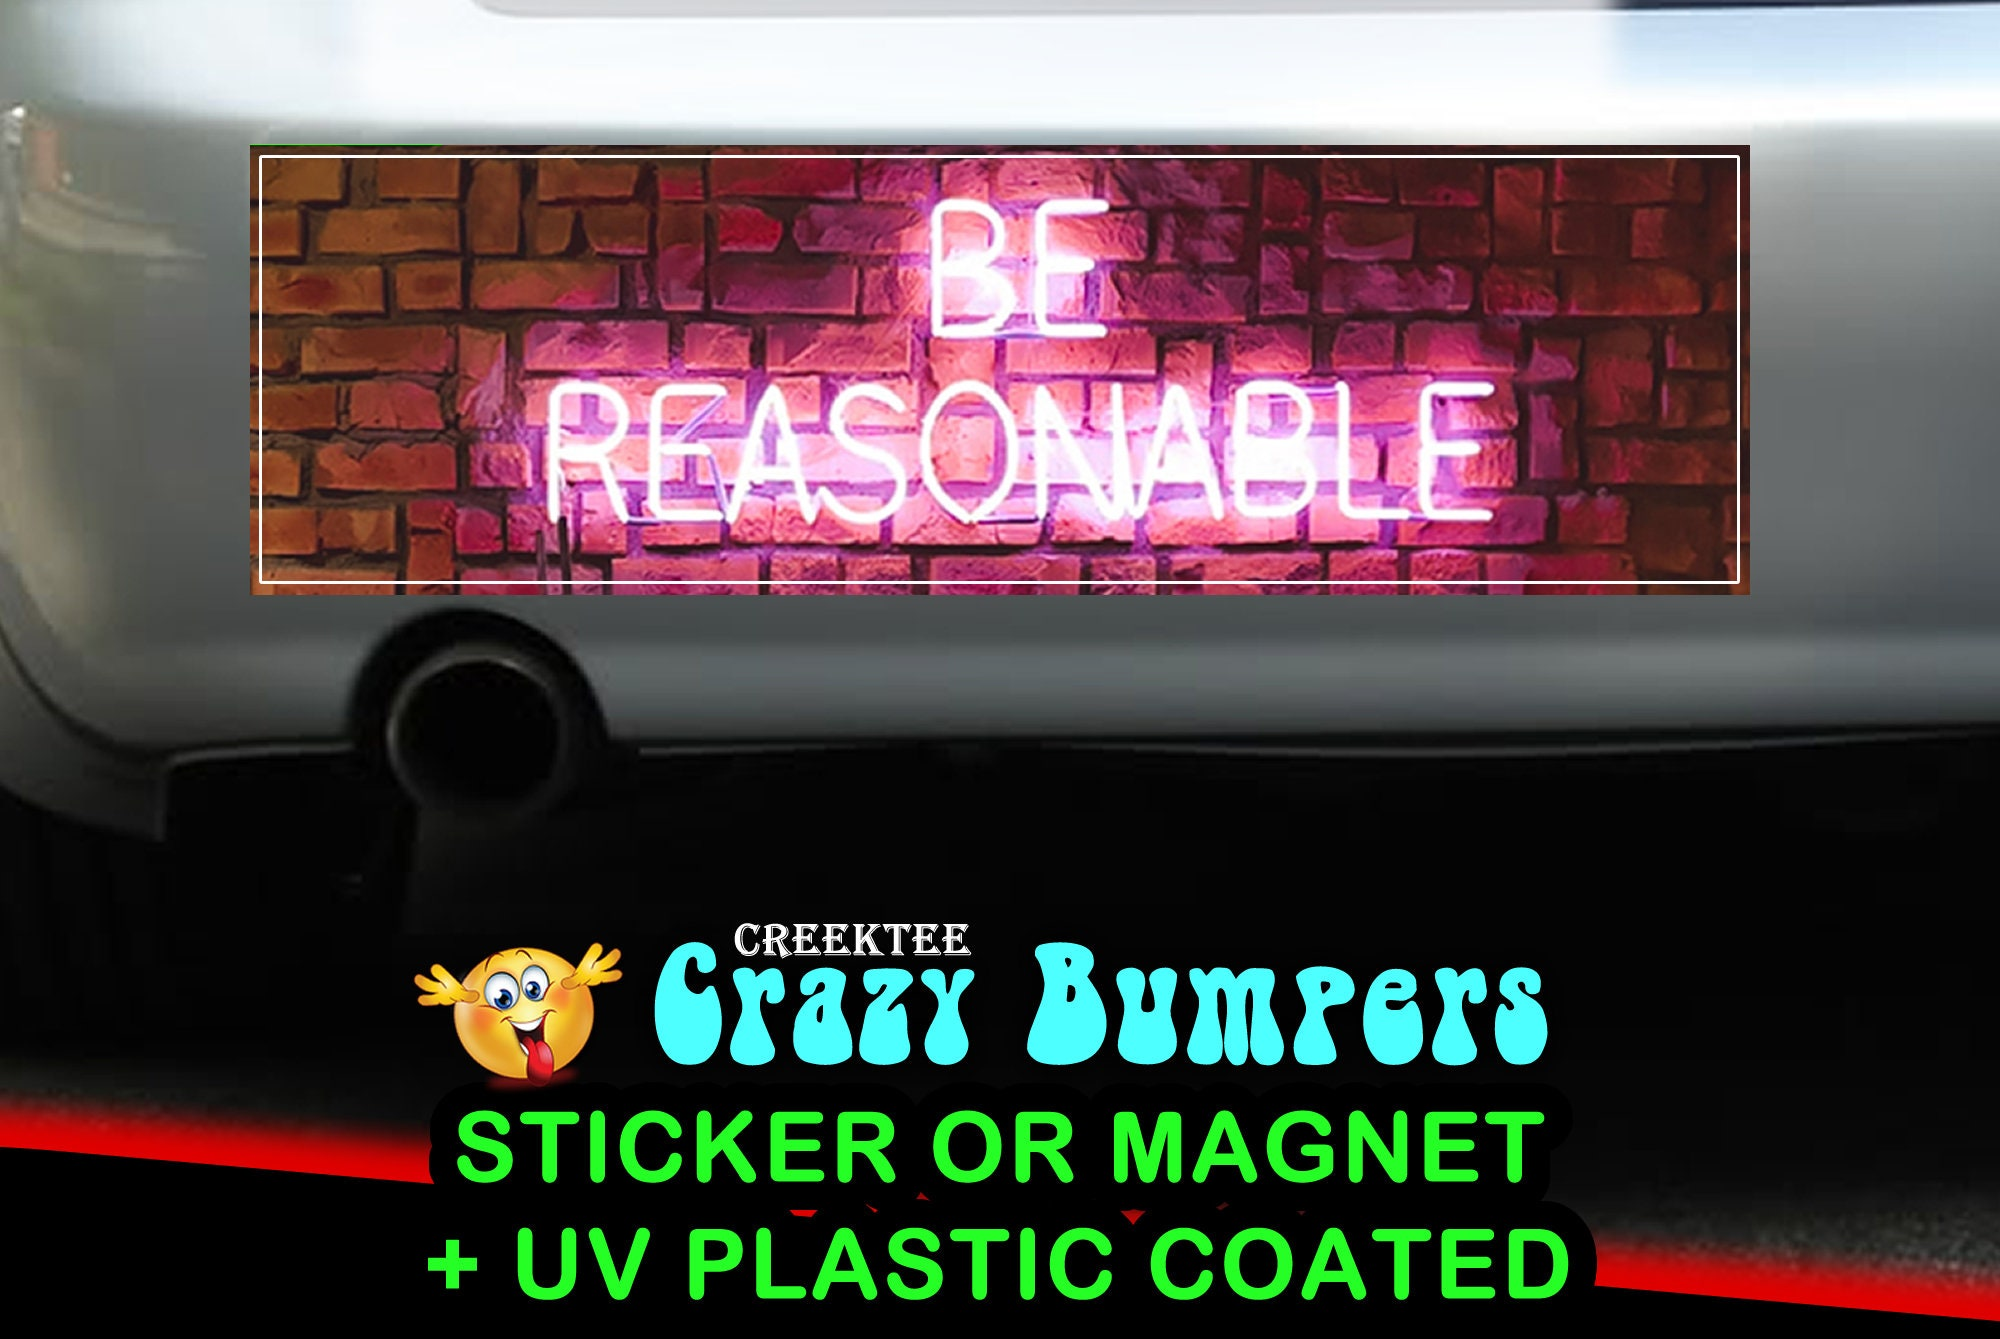 CAD$9.74 - Be Reasonable 10 x 3 Bumper Sticker or Magnet - Custom changes and orders welcomed!